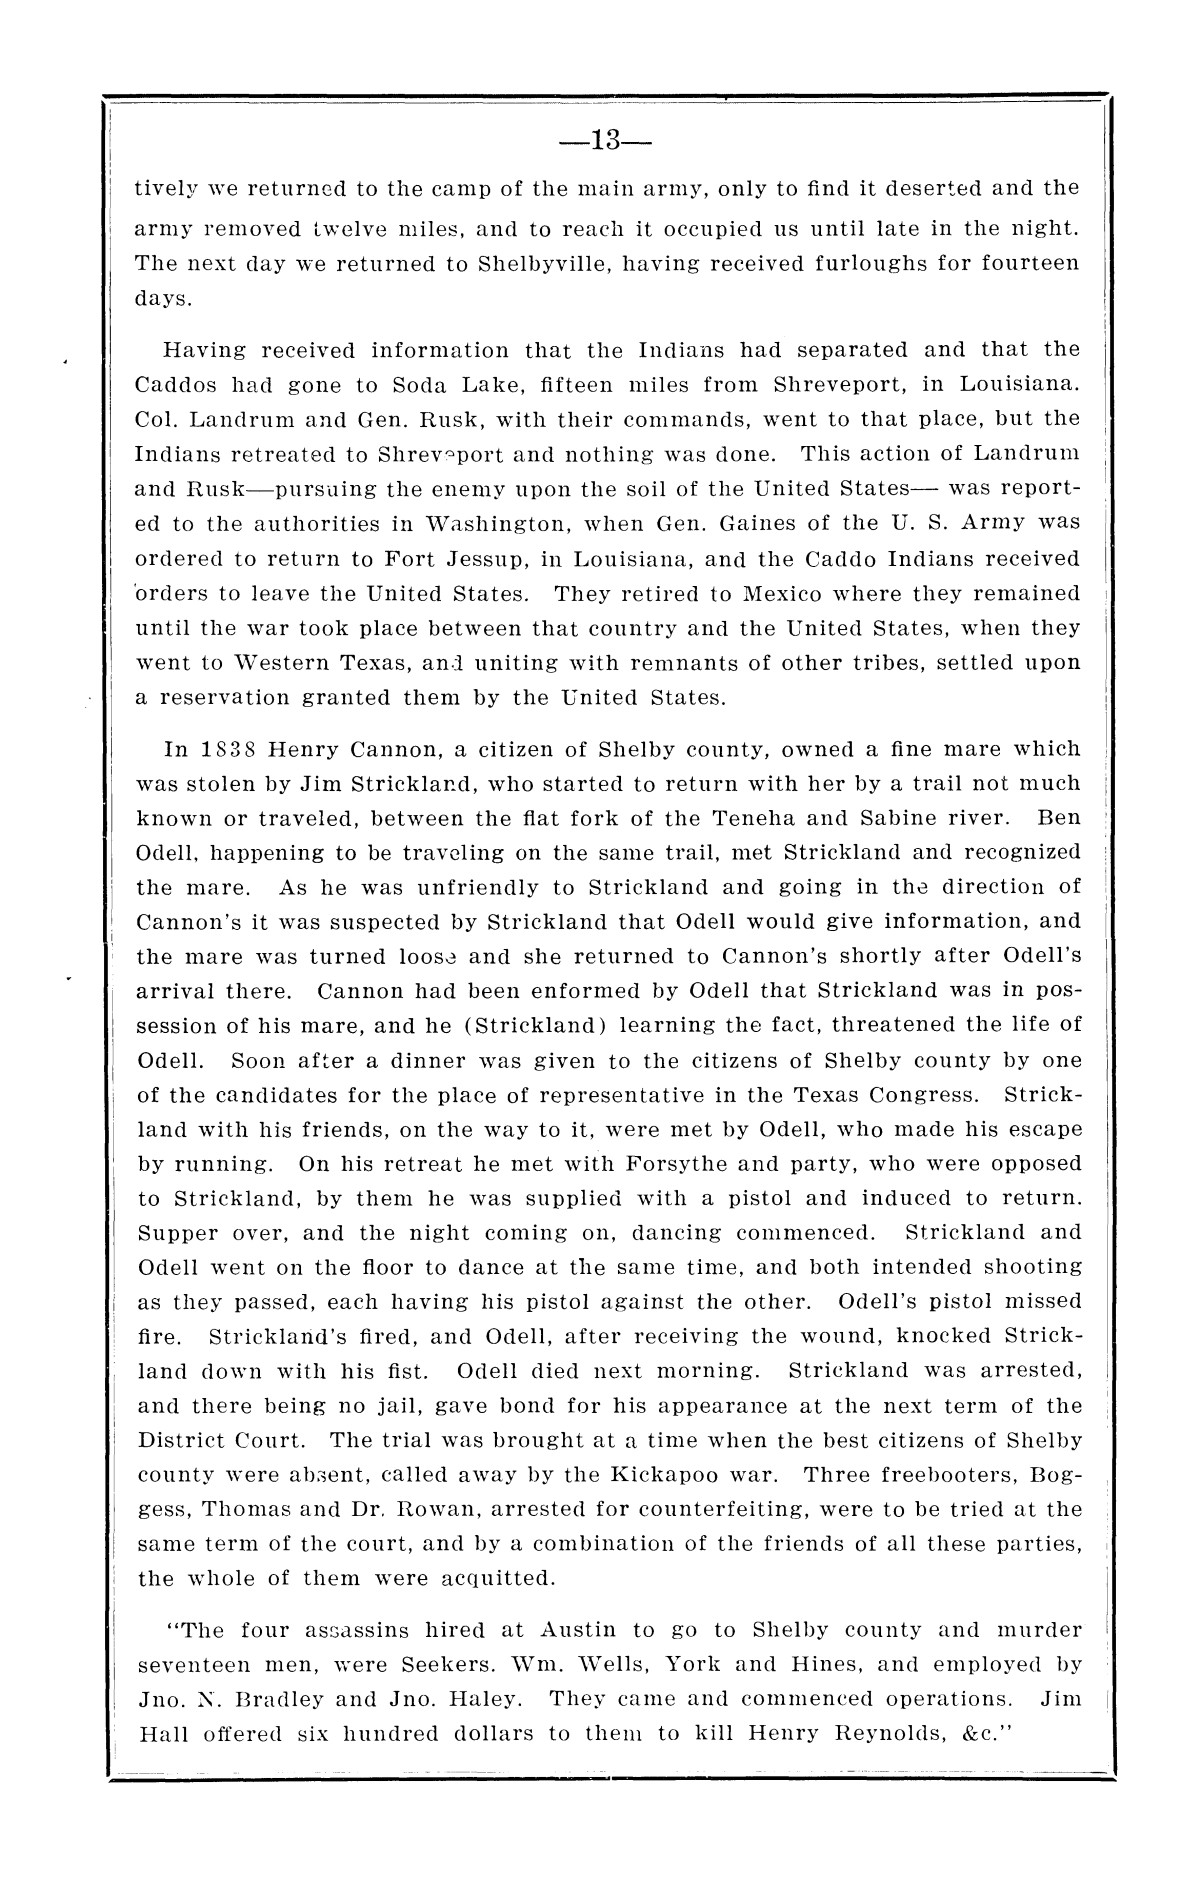 History of the regulators and moderators and the Shelby County war in 1841 and 1842, in the republic of Texas, with facts and incidents in the early history of the republic and state, from 1837 to the annexation, together with incidents of frontier life and Indian troubles, and the war on the reserve in Young County in 1857                                                                                                      [Sequence #]: 15 of 42